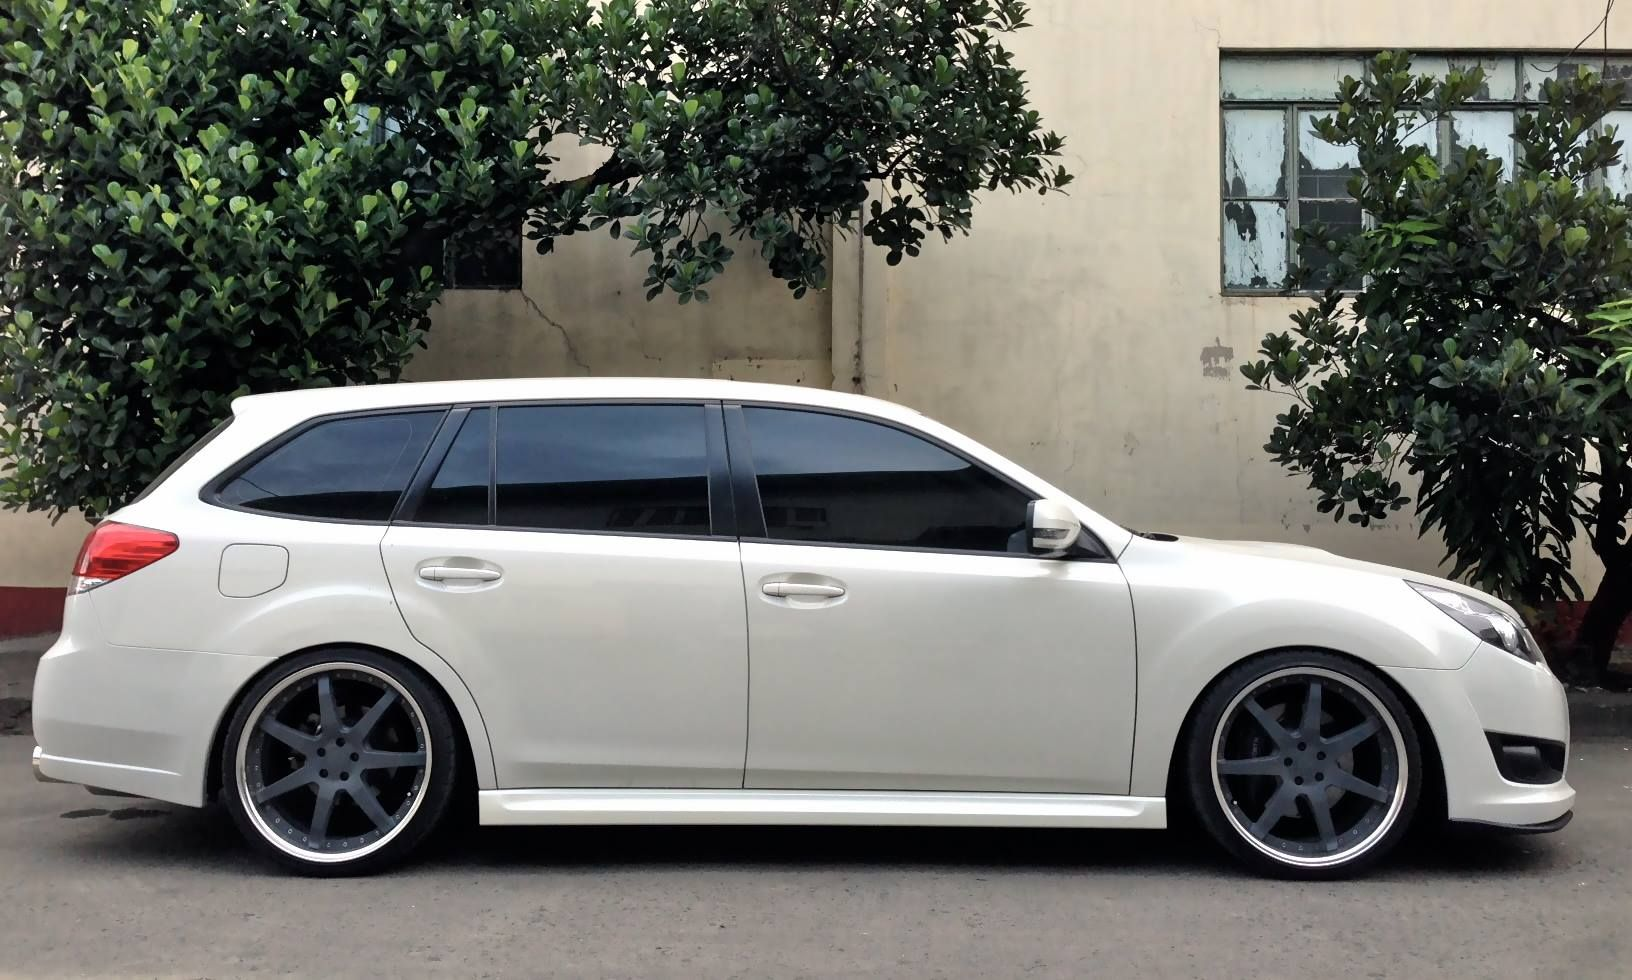 Want To Wrap Your Magwheels To Any Color Just Like This Classy Subaru Legacy Gt Inquire Now Dec 4 2013 Carpornr Subaru Legacy Subaru Legacy Gt Legacy Gt